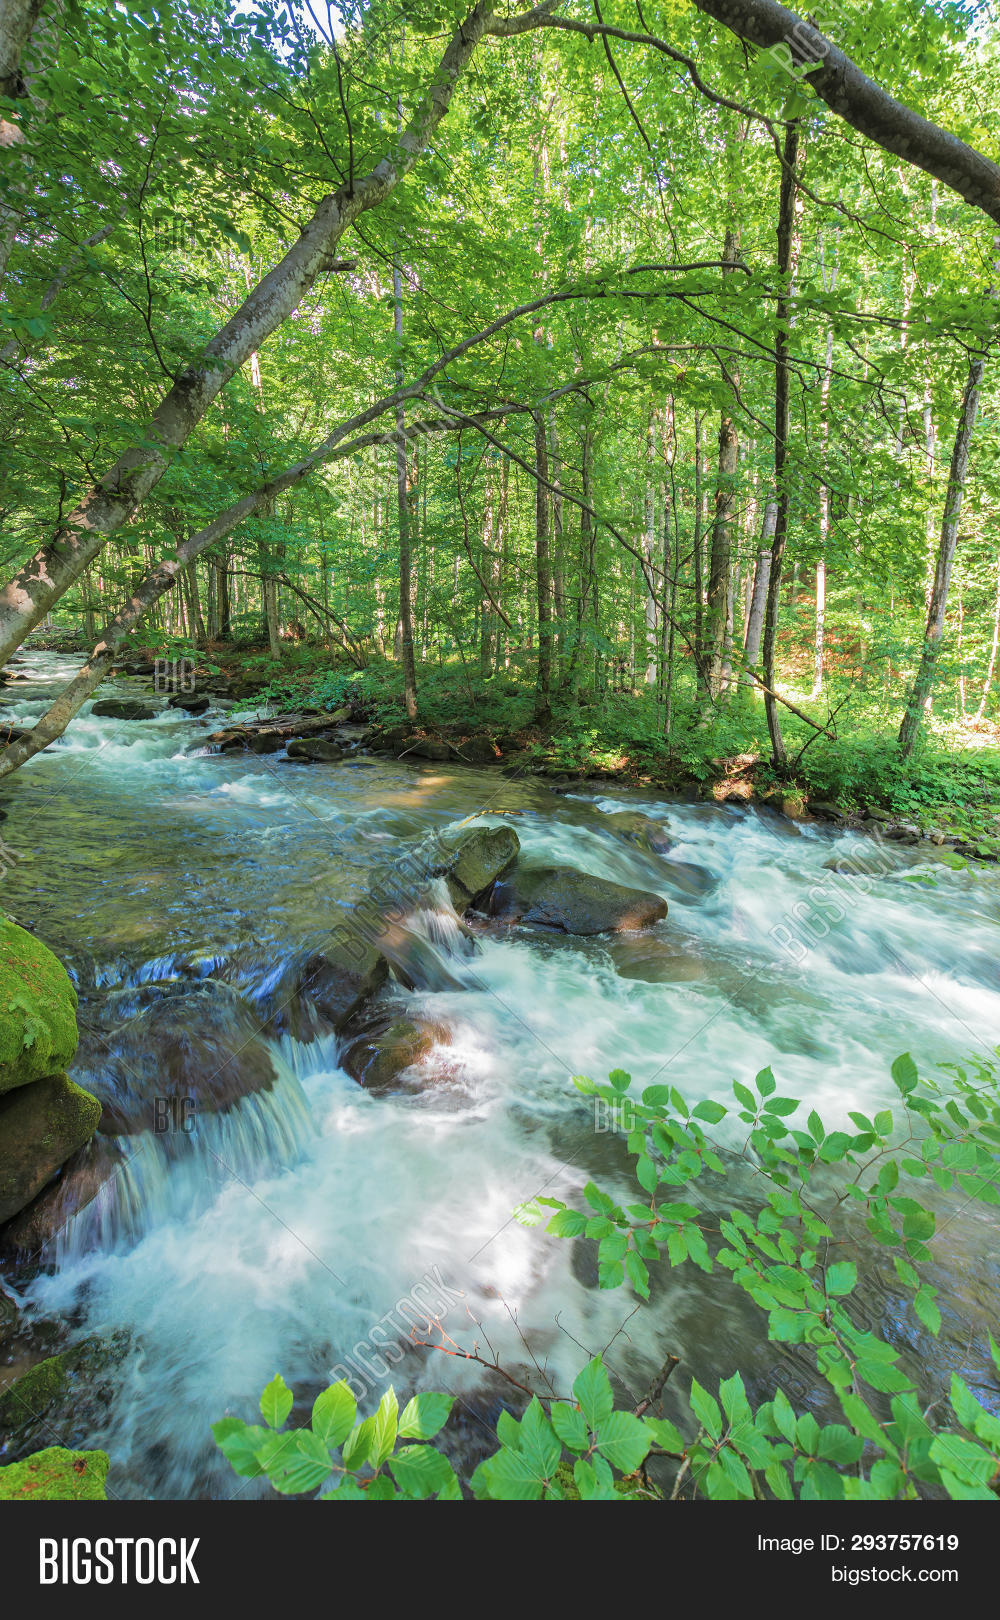 Bank Forest River Image Photo Free Trial Bigstock